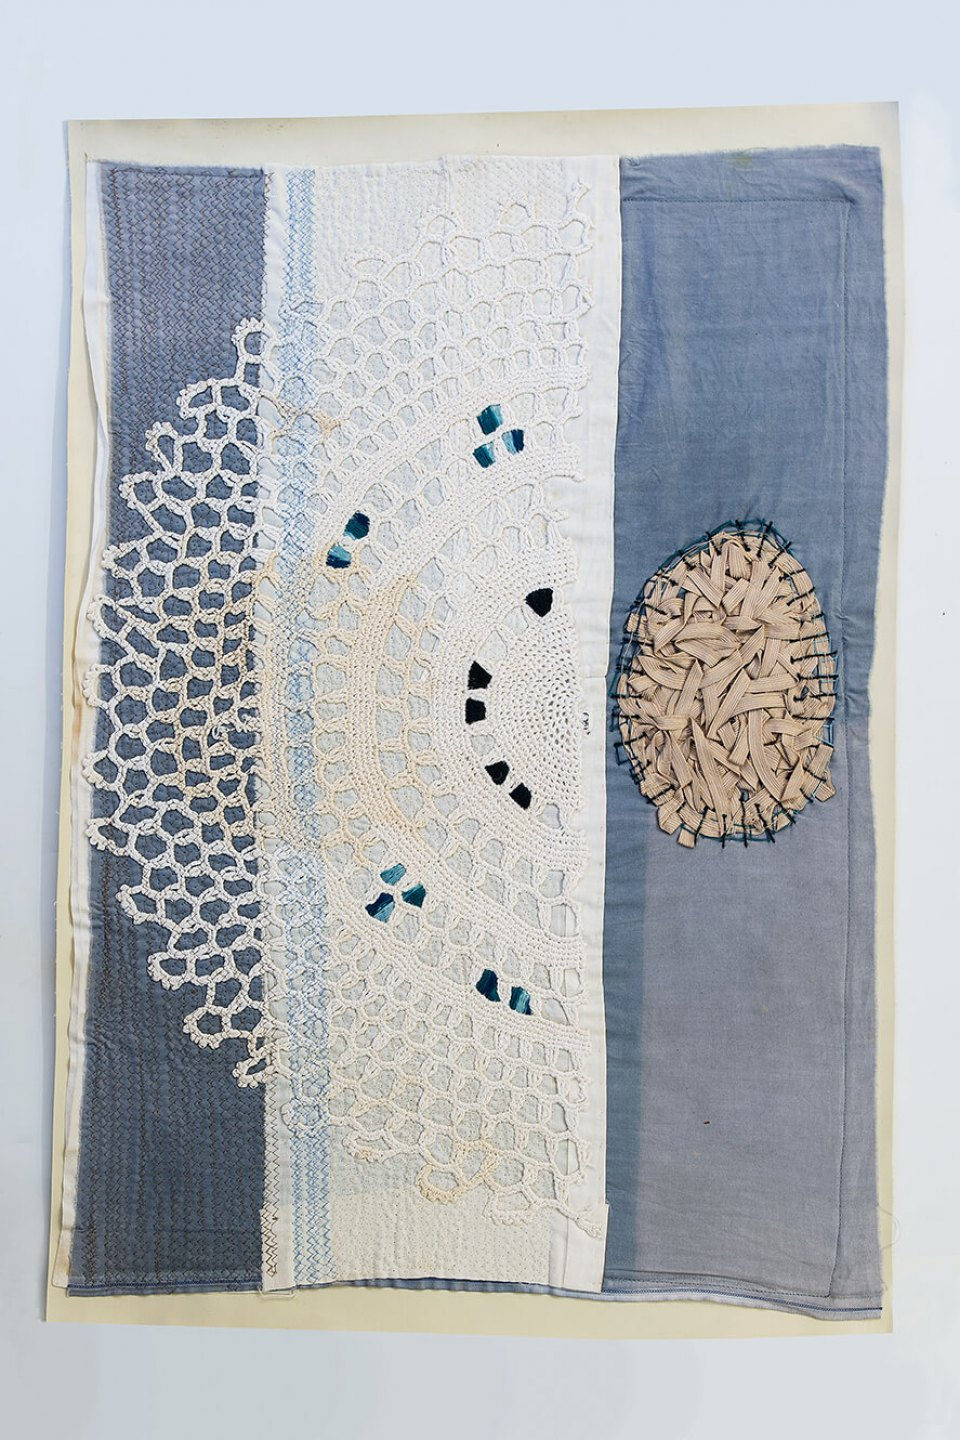 f.marquespeteado,&nbsp;<em>Untitled 05,</em>&nbsp;2011, applications hand and machine embroidered on PVC, 74&nbsp;×&nbsp;51 cm - Mendes Wood DM